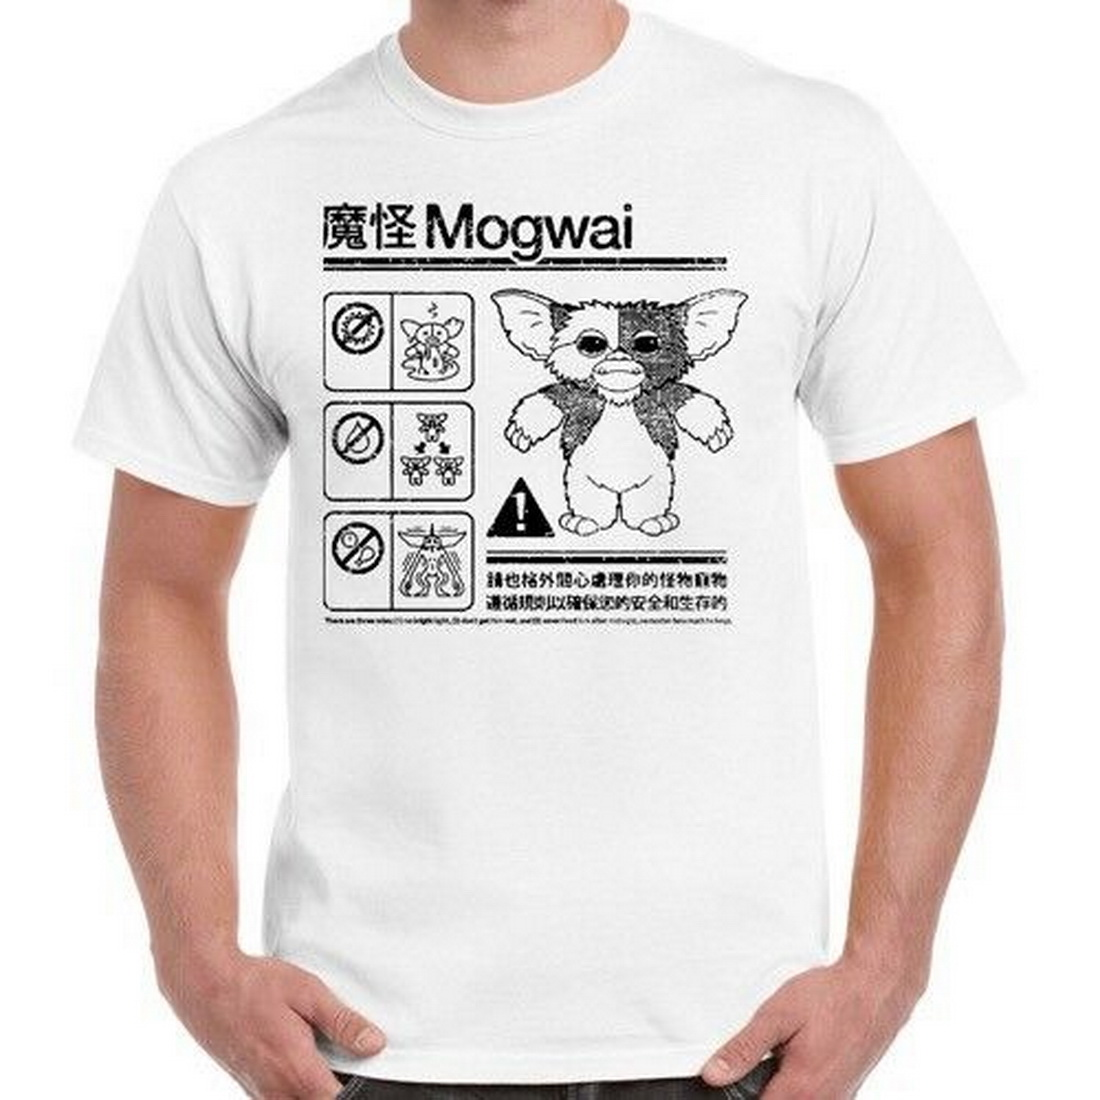 Gremlins Mogwai Safety Instructions Diagram Movie Retro Tops Tee <font><b>T</b></font> Shirt <font><b>55</b></font> <font><b>T</b></font>-Shirt Vintage Graphic image